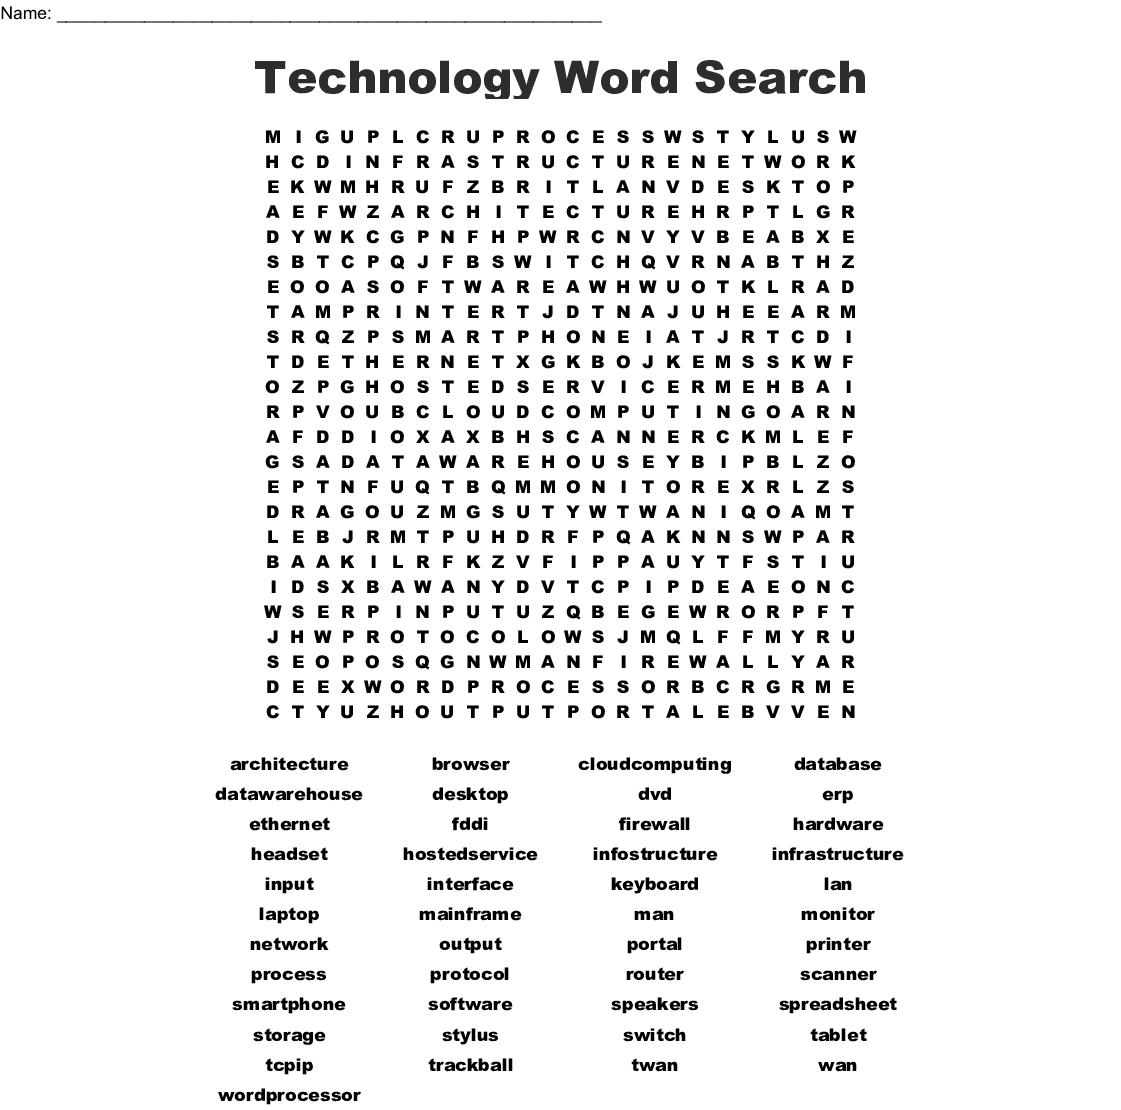 Information Technology Word Search - Wordmint